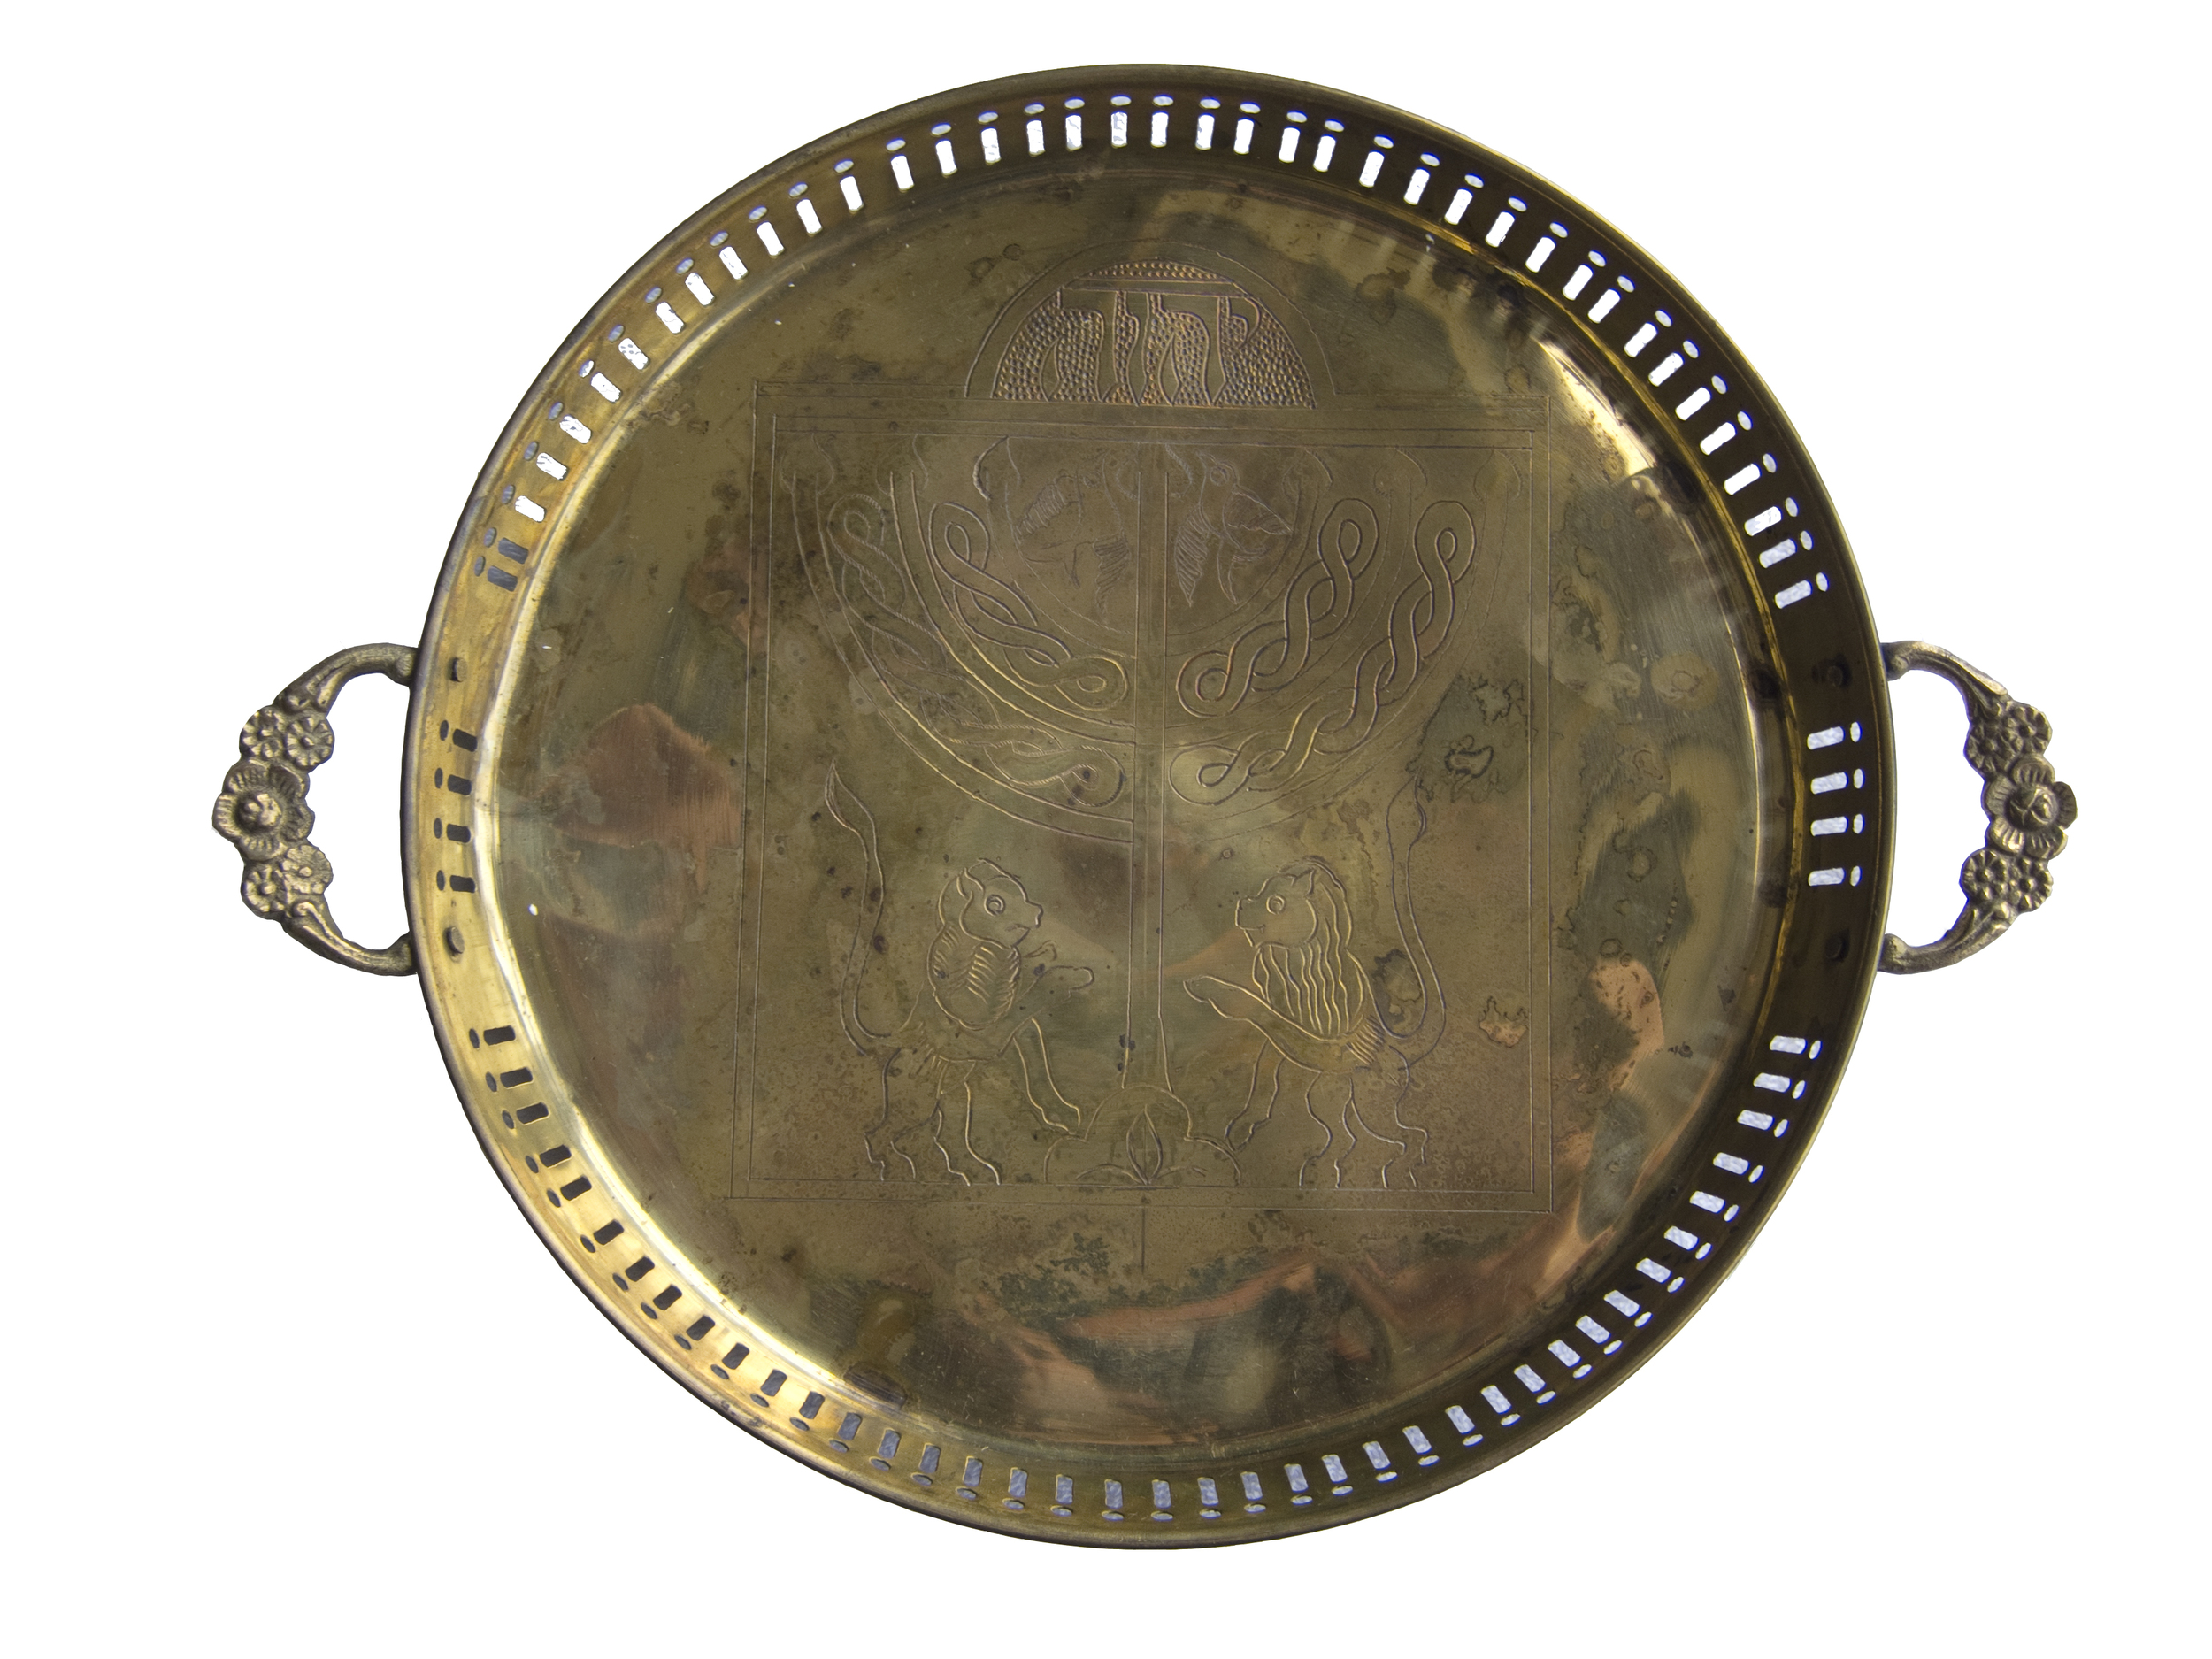 The surfaces upon which the dinners were served are from Jewish families who left Iraq in the 1940s and 1950s. Some are everyday dishes. Others are more precious, like the tray pictured here, which was used to serve traditional recipes in the Great Synagogue of Baghdad. Nearly all of the serving ware are small and made of metal, compact enough to be placed under clothing and smuggled—many Jews had to leave Iraq without any of their belongings— and sturdy enough to survive the journey without shattering.